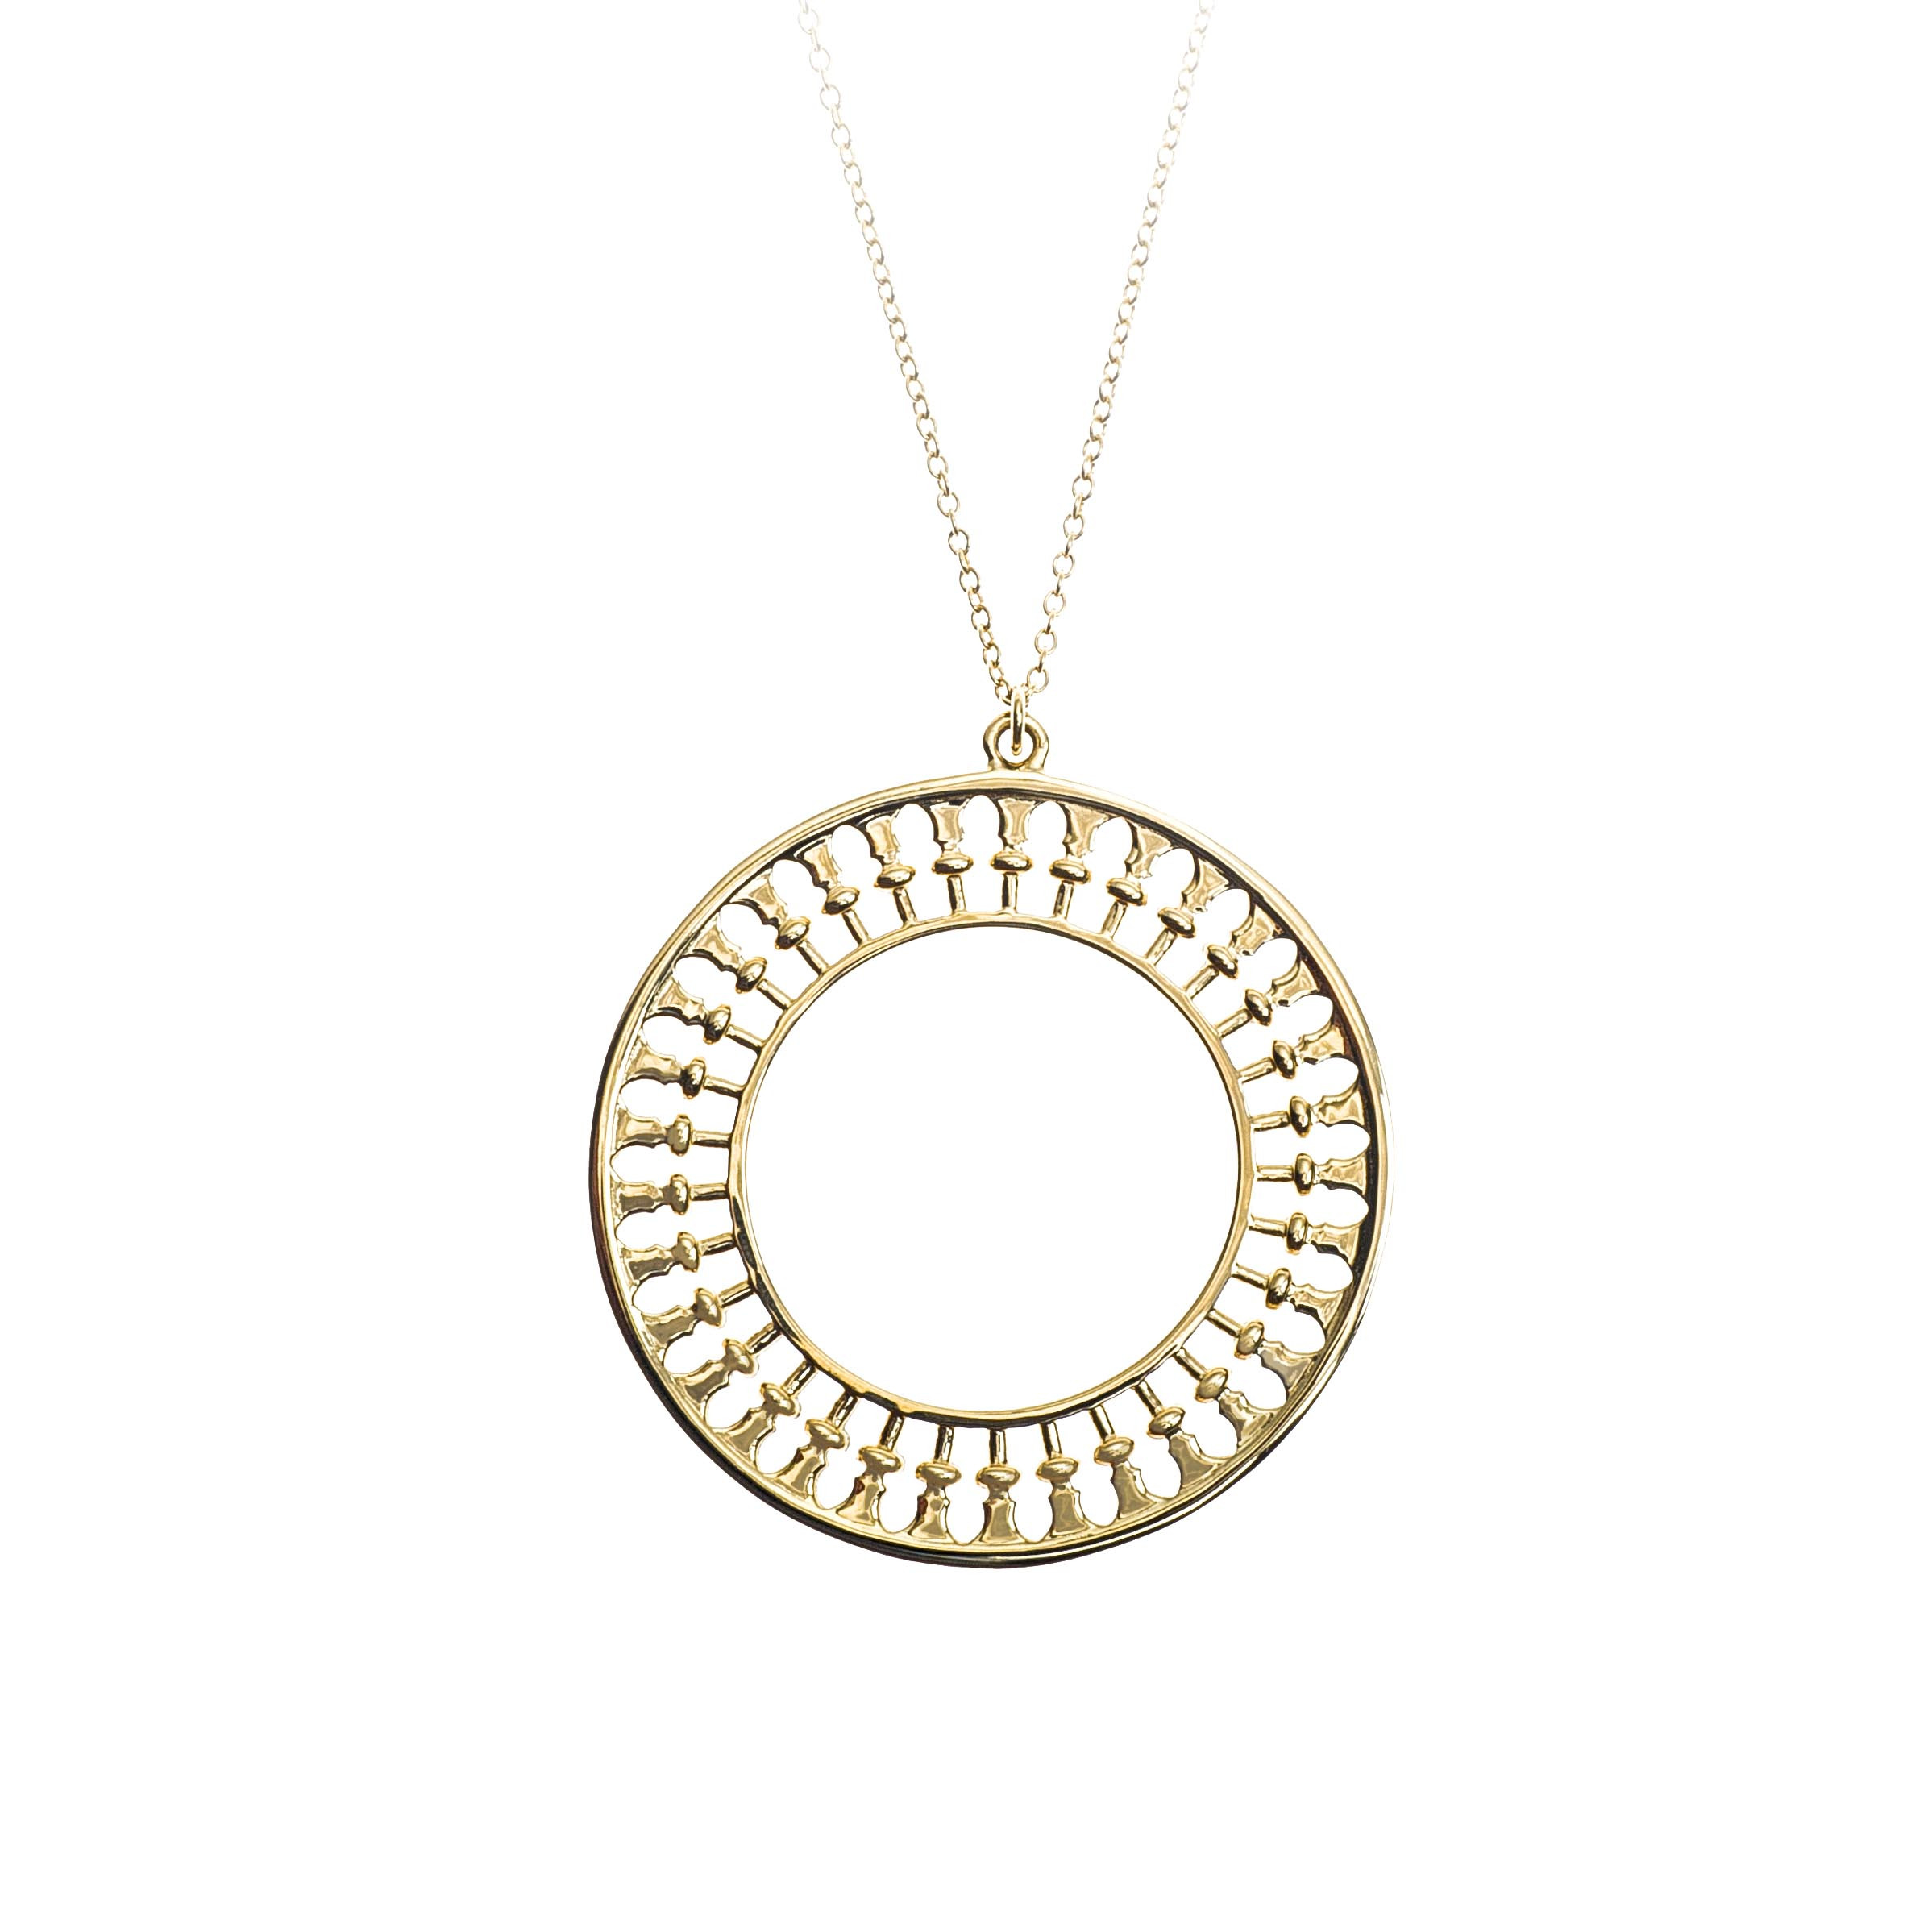 jewelry s chanel women medallion in cc gold necklace pendant metallic lyst